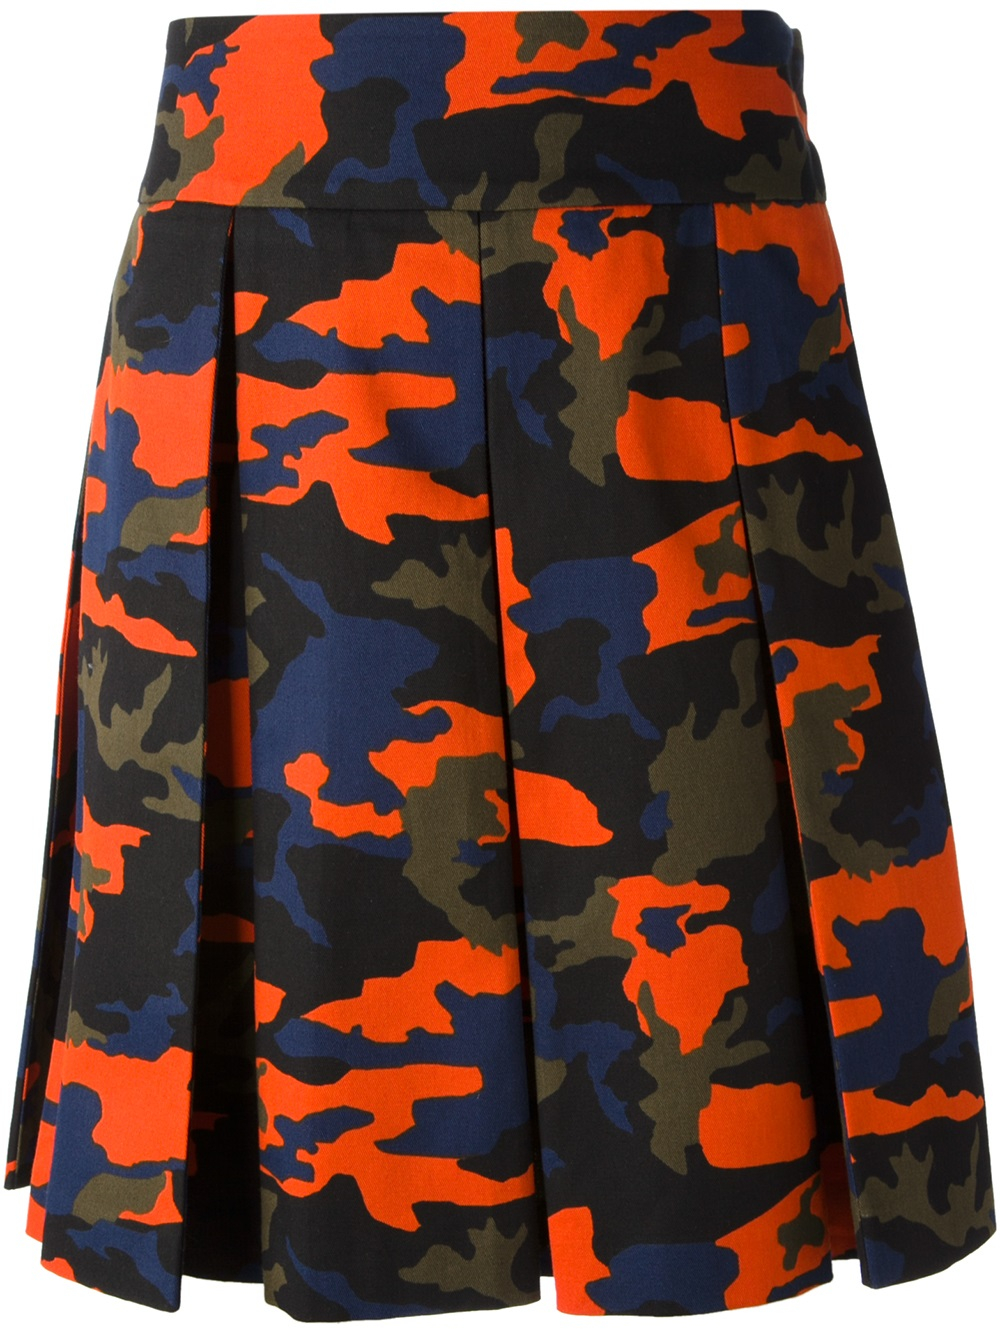 Lyst - Givenchy Camouflage Kilt in Green for Men c7553a16d270